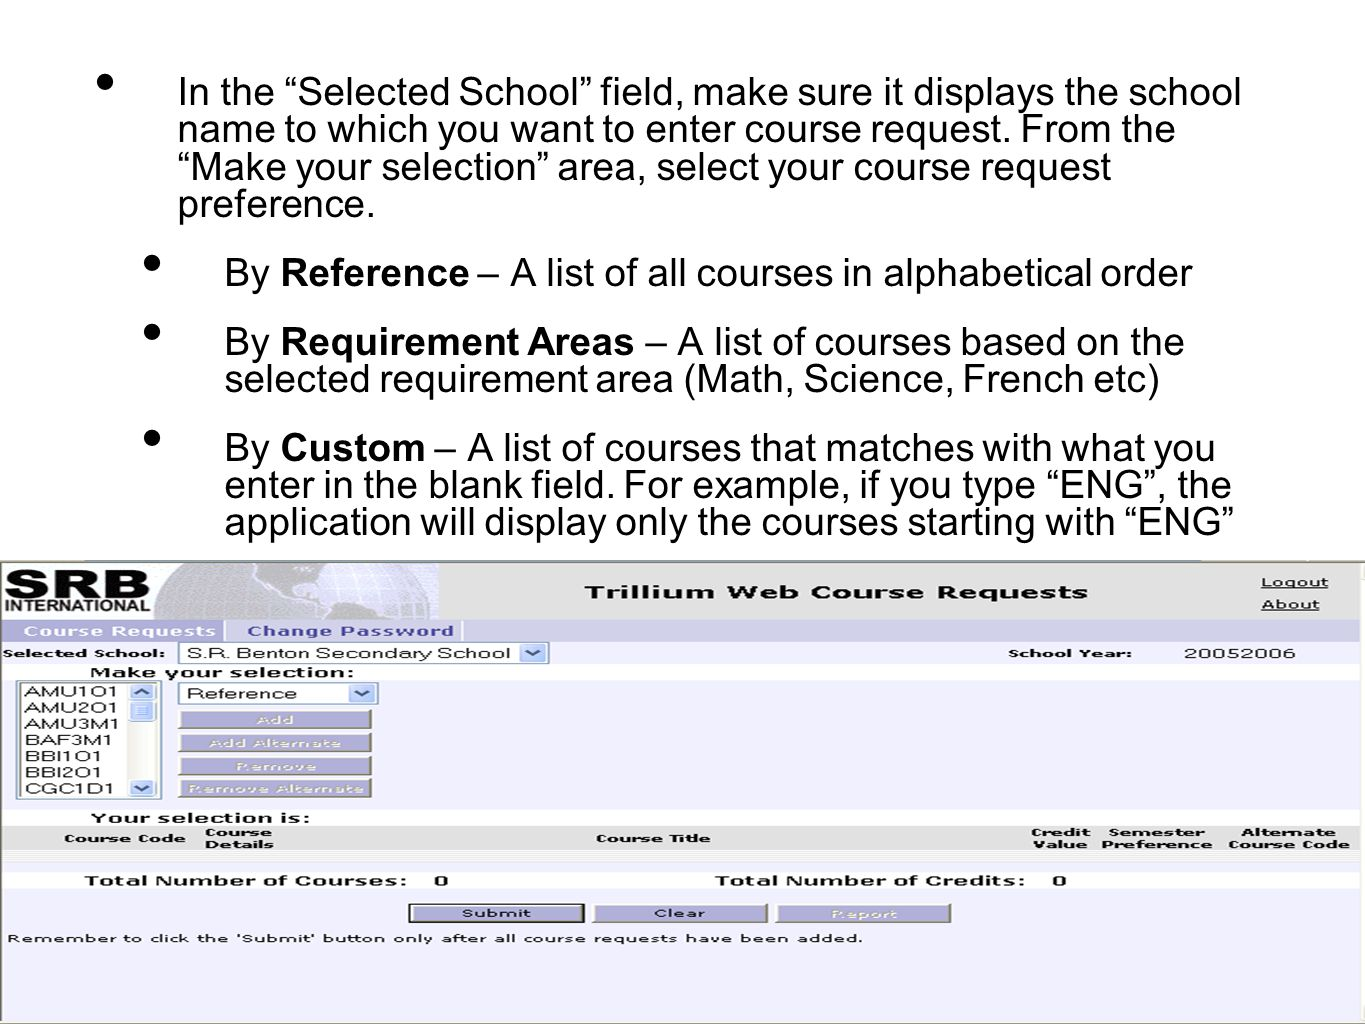 In the Selected School field, make sure it displays the school name to which you want to enter course request.